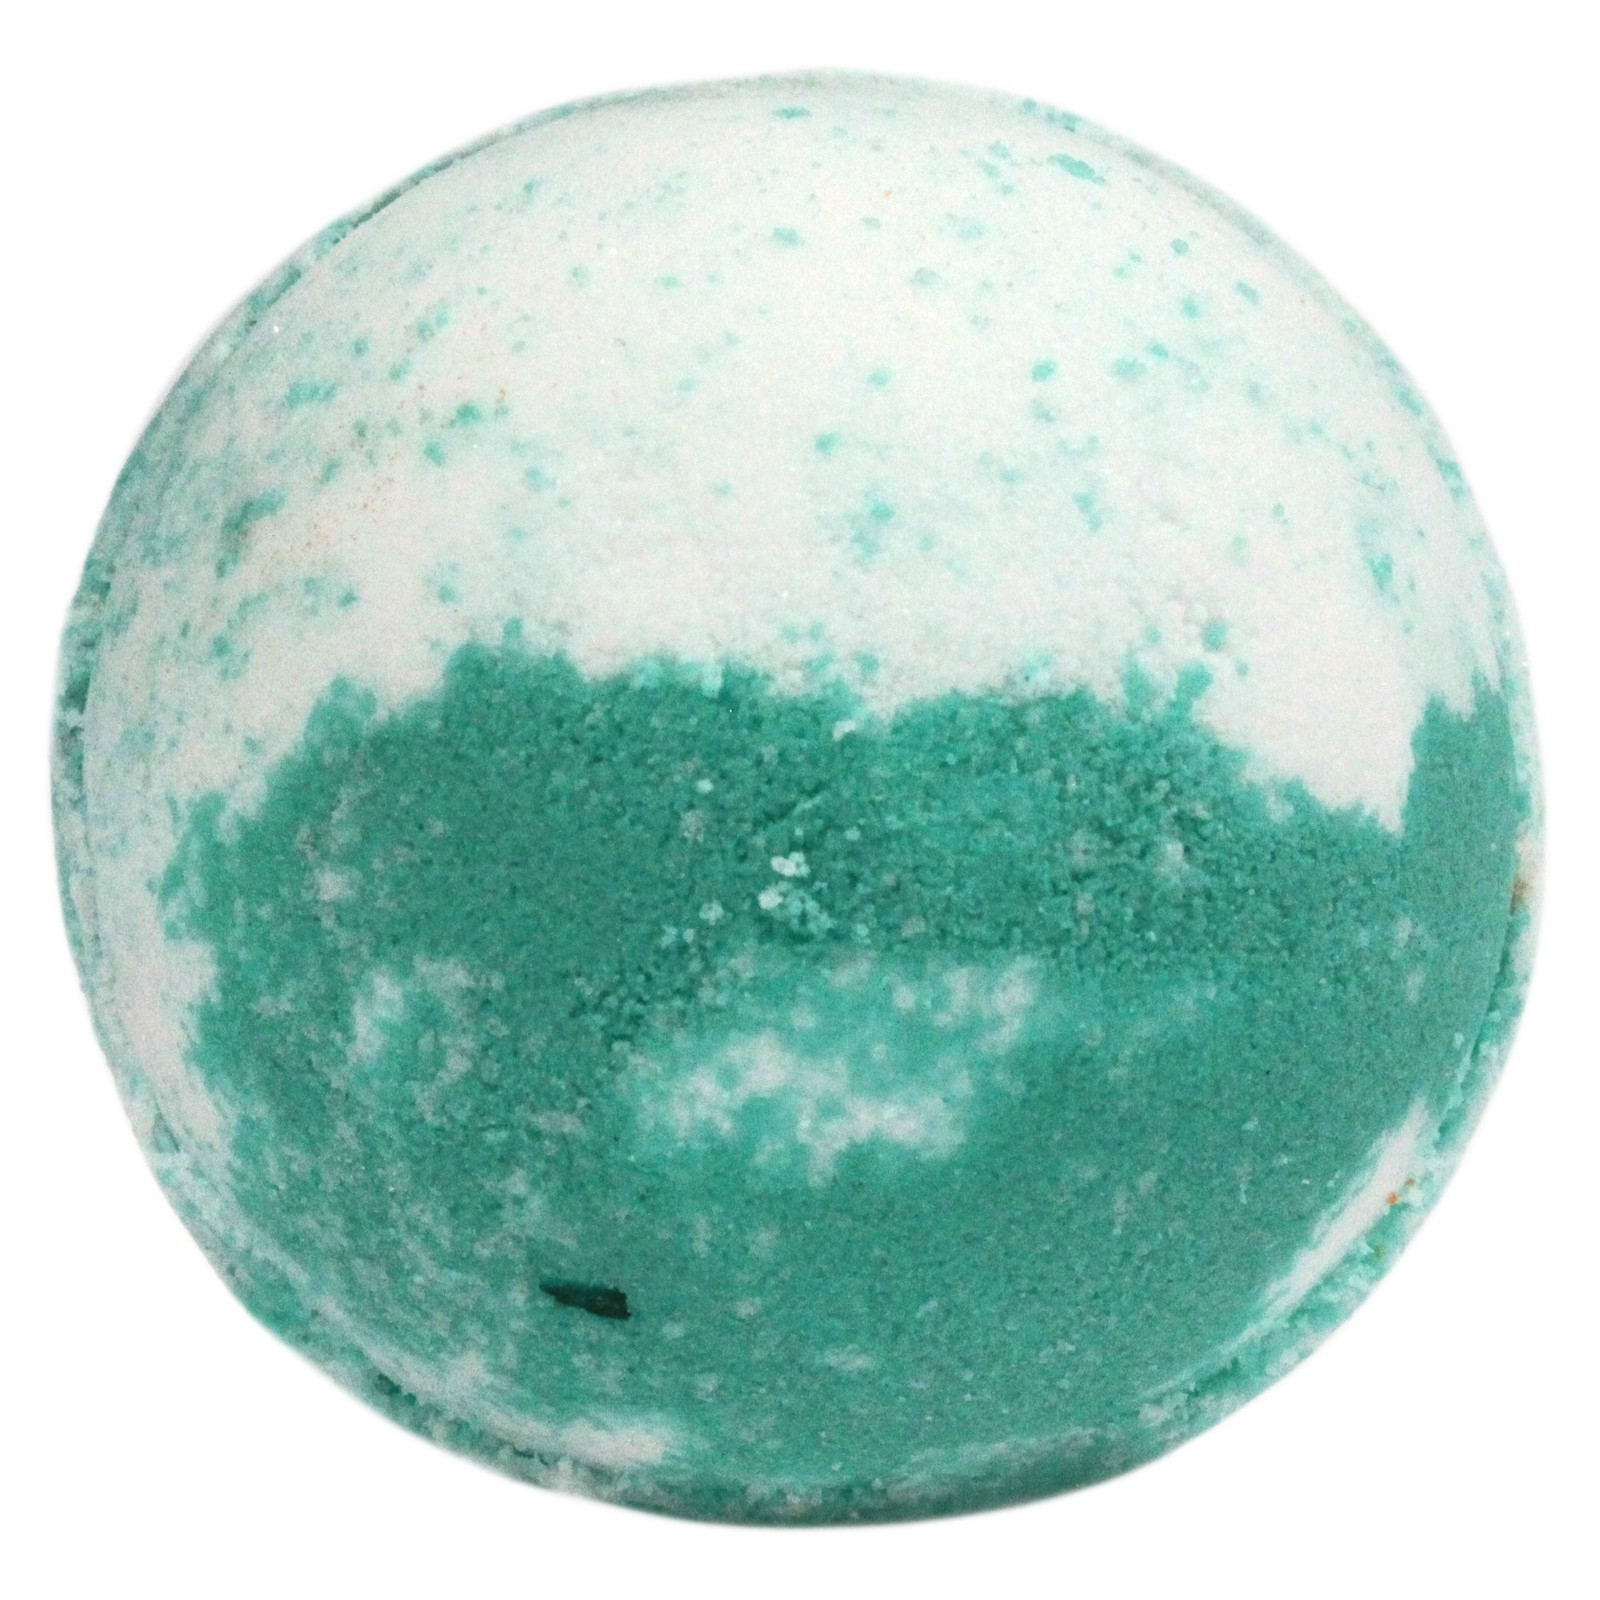 Five for Him (or Her) Jumbo Bath Bomb